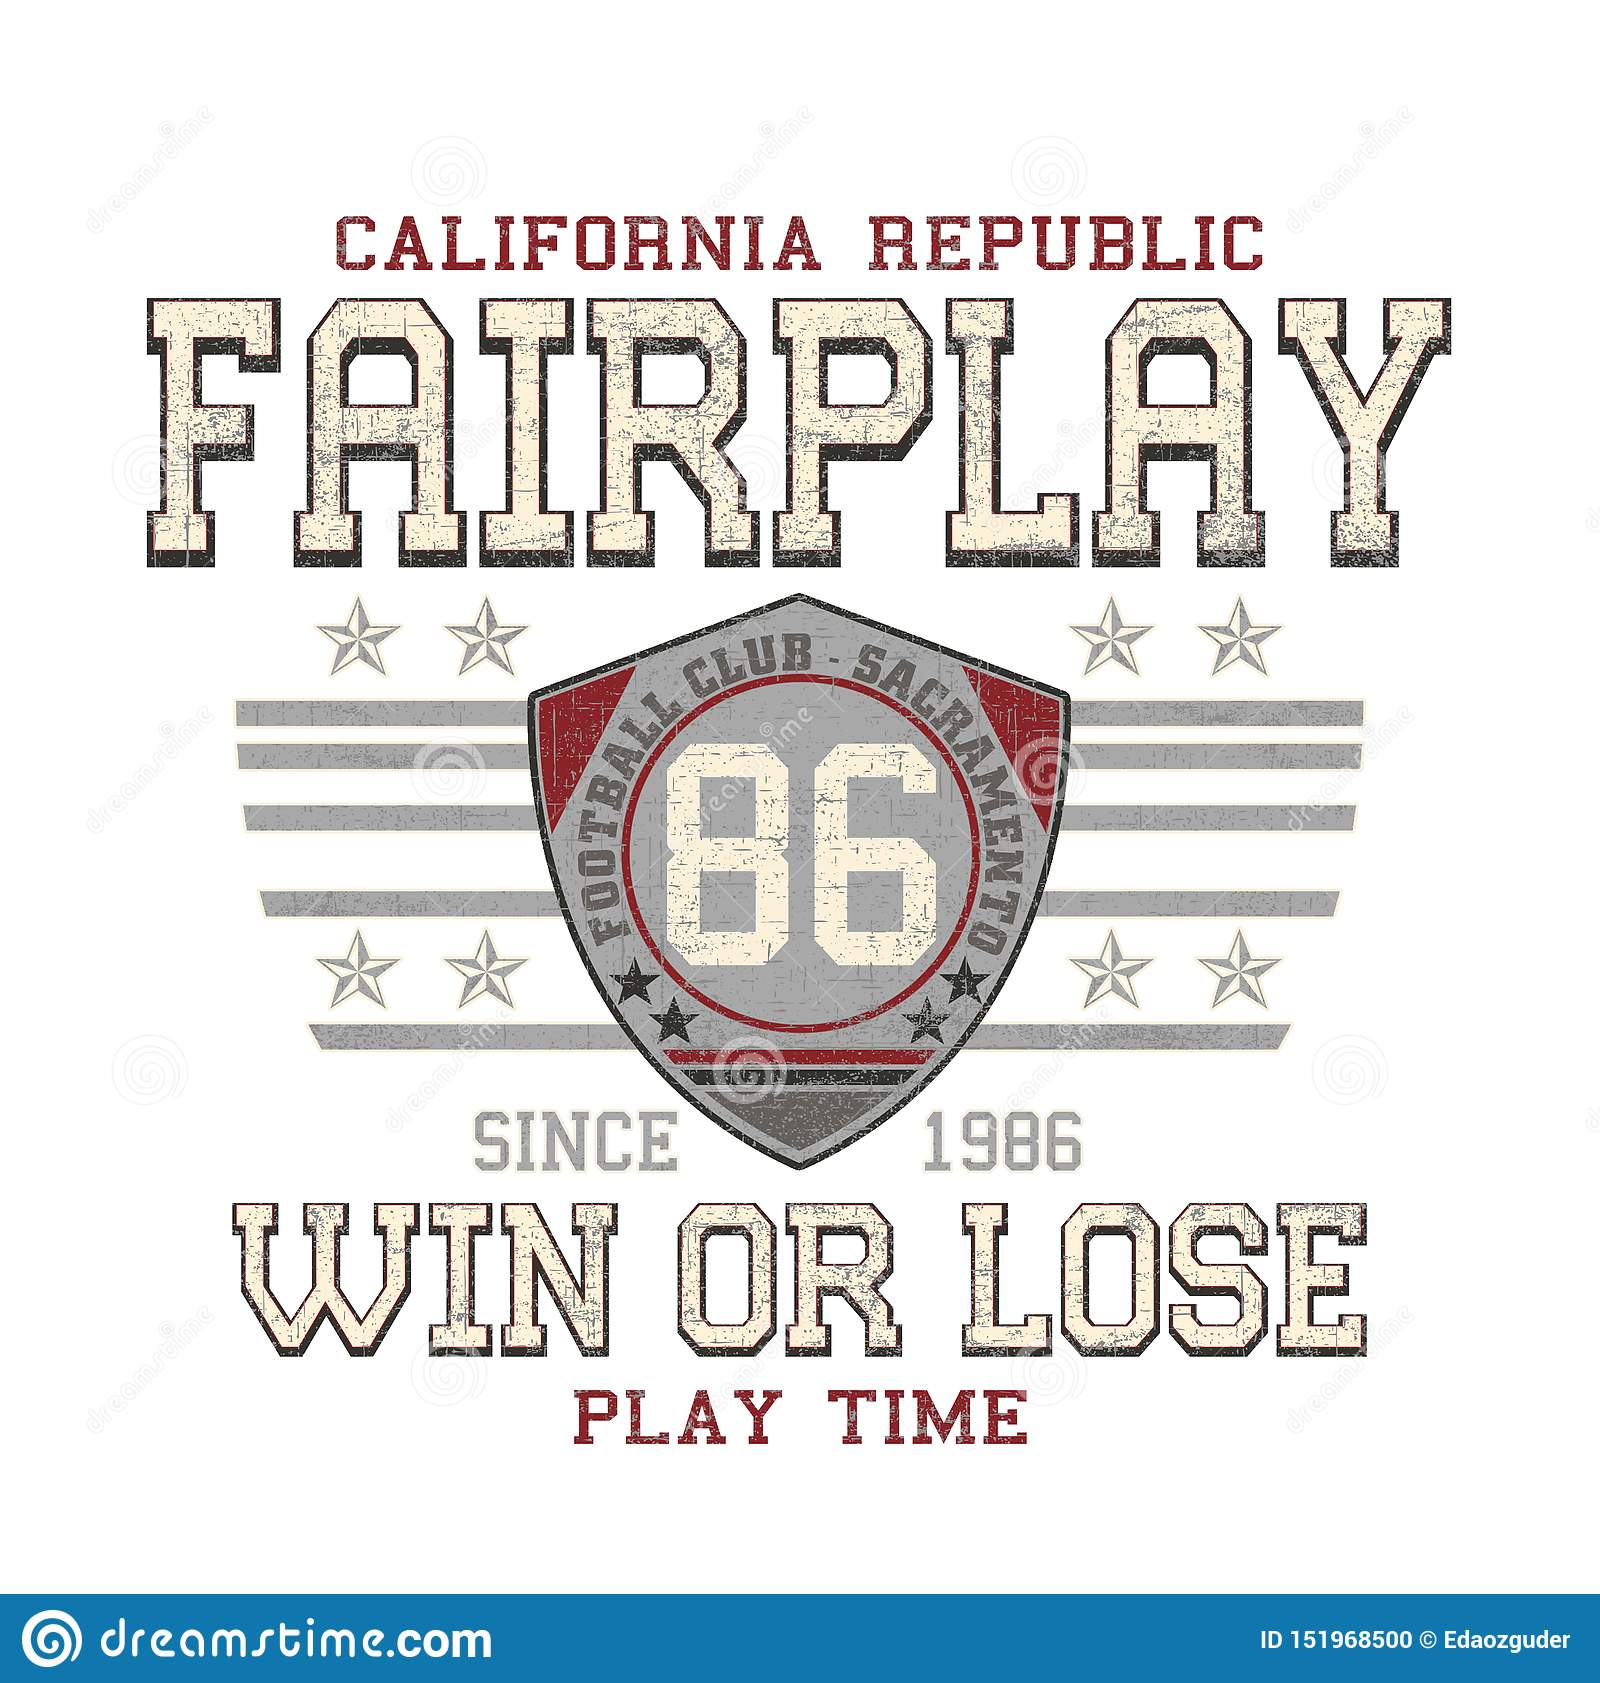 `Fair play, win or lose, play time` typography, tee shirt printing